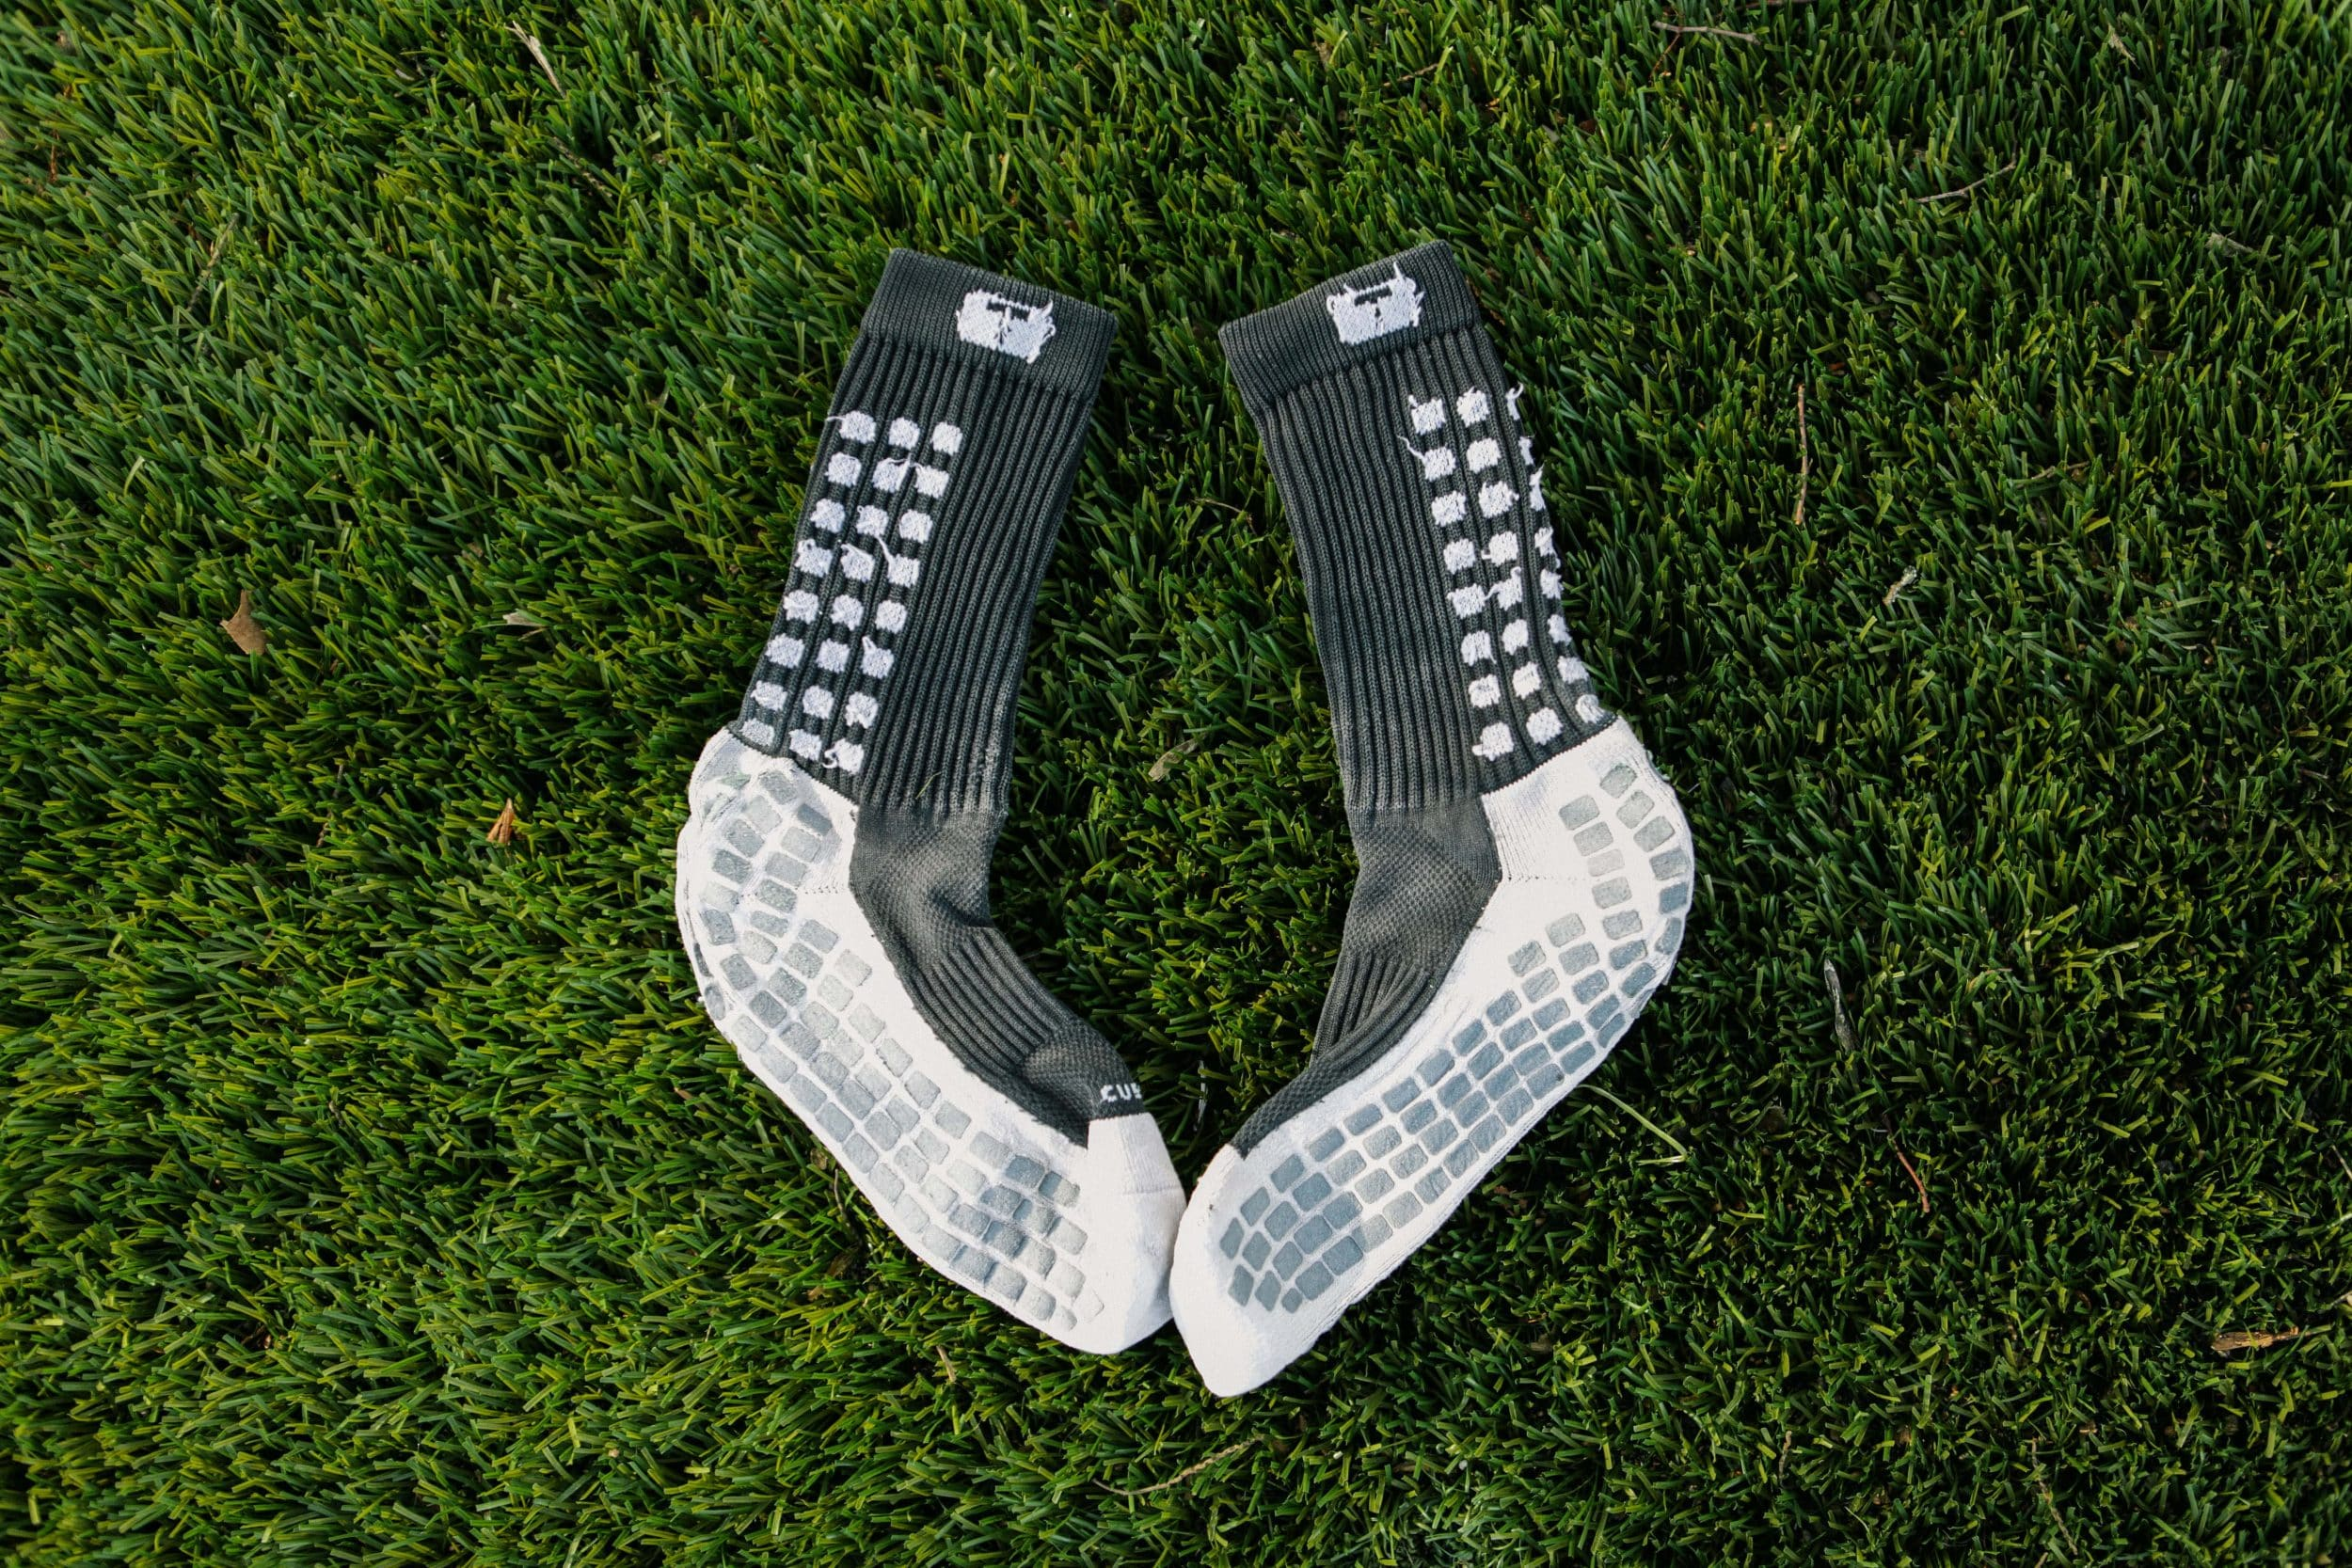 guide-chaussettes-football-performance-trusox-2